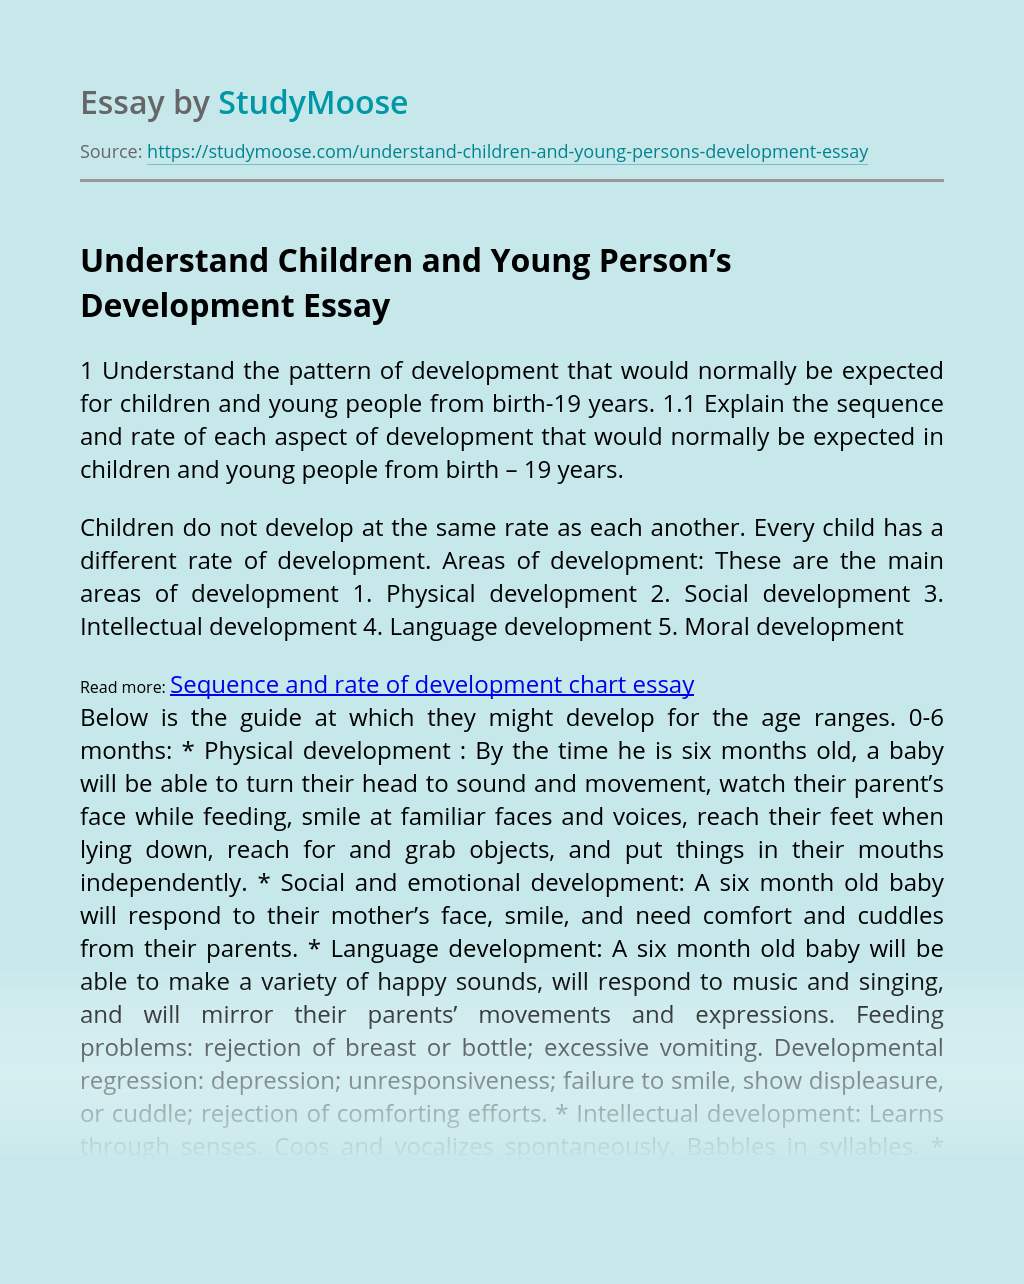 Understand Children and Young Person's Development